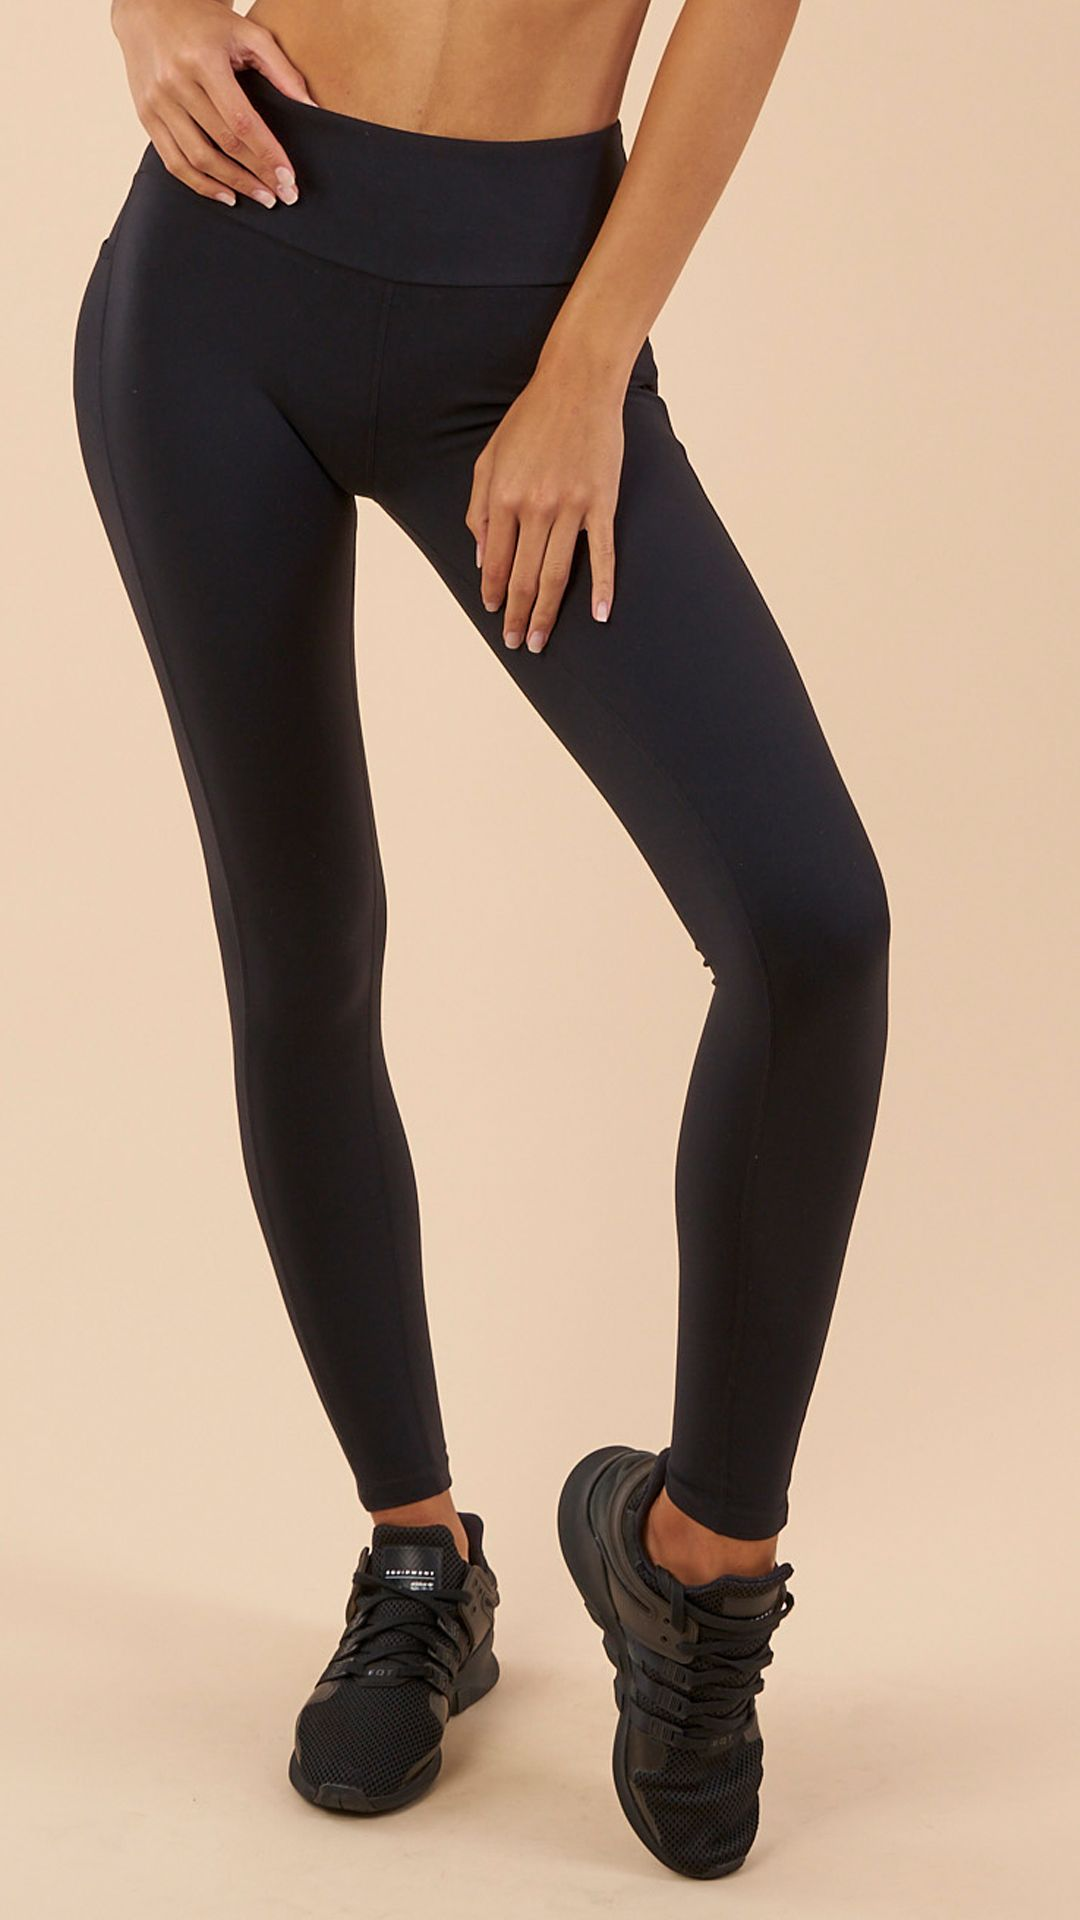 baede3380d7 The Women's Aspire Leggings are a must-have addition to your workout ...